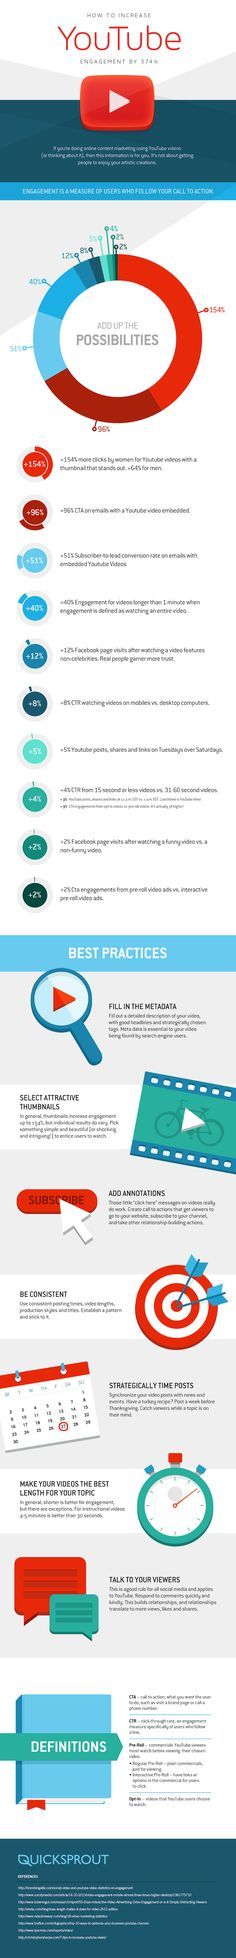 How to Increase YouTube Engagement #infographic